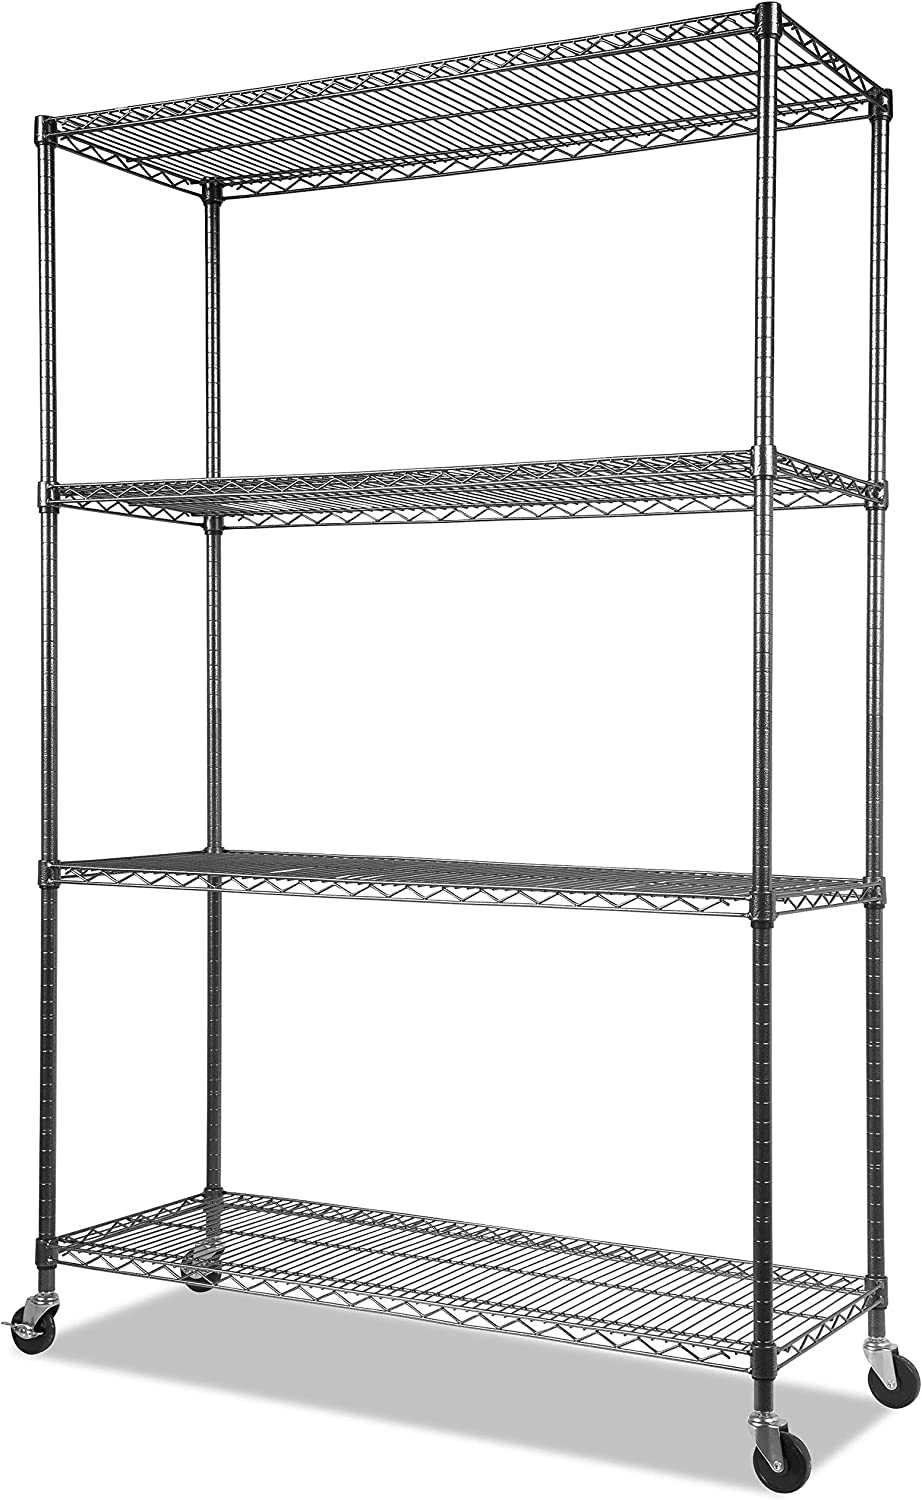 "Alera Complete Wire Shelving Unit w/Caster, 48"" x 18"" x 72"", Black Anthracite"